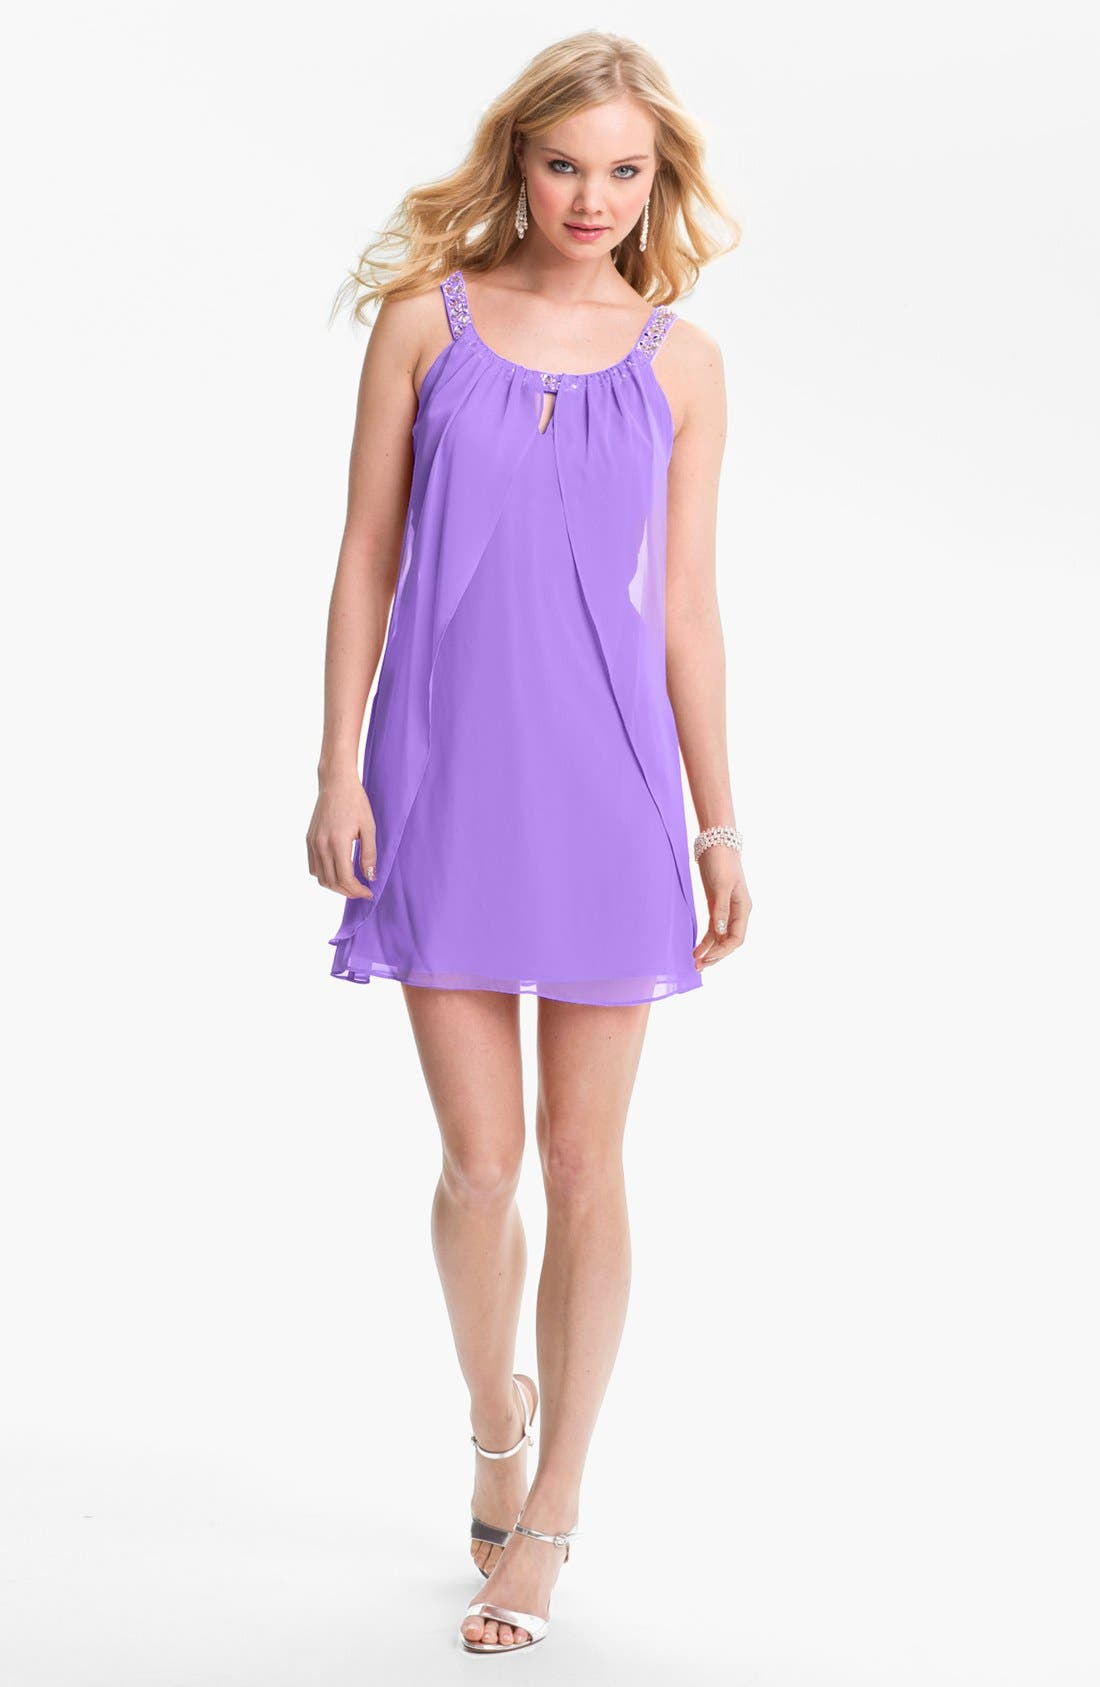 Alternate Image 1 Selected - Hailey Logan Embellished Strap Flutter Dress (Juniors) (Online Only)